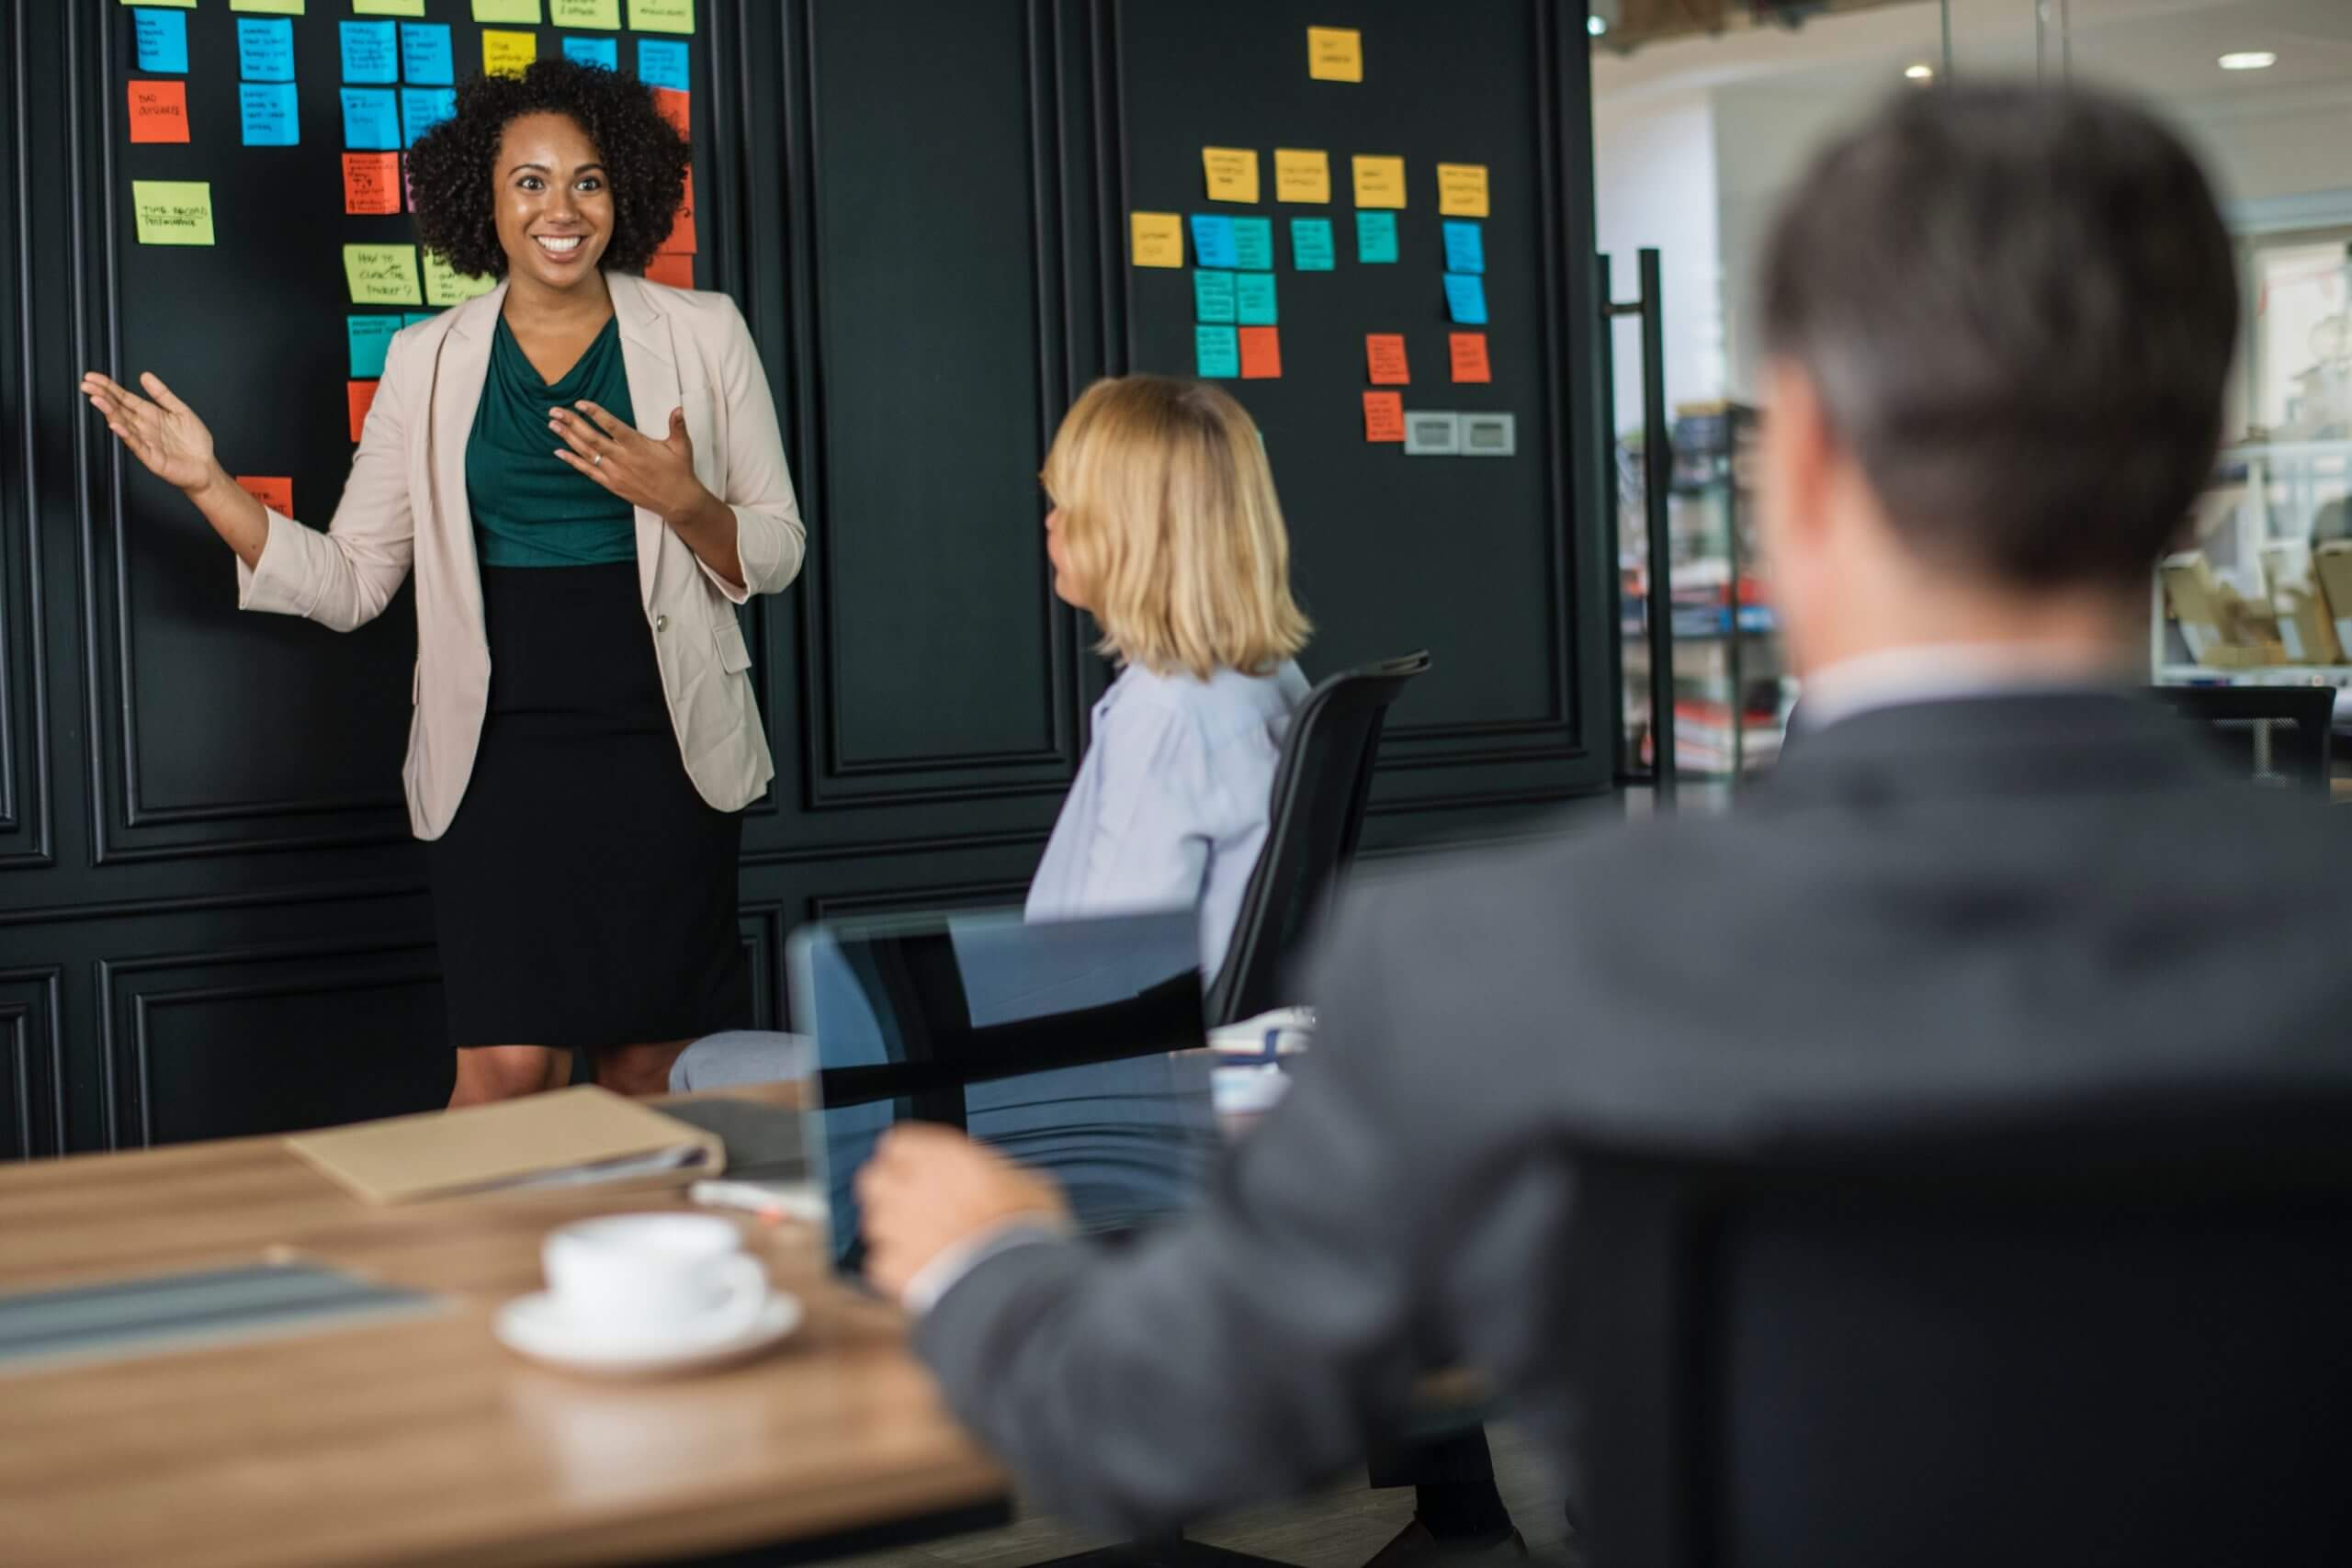 businesses achieving digital solutions - marketing meeting with woman holding hand up and smiling toward blackboard of post-it notes